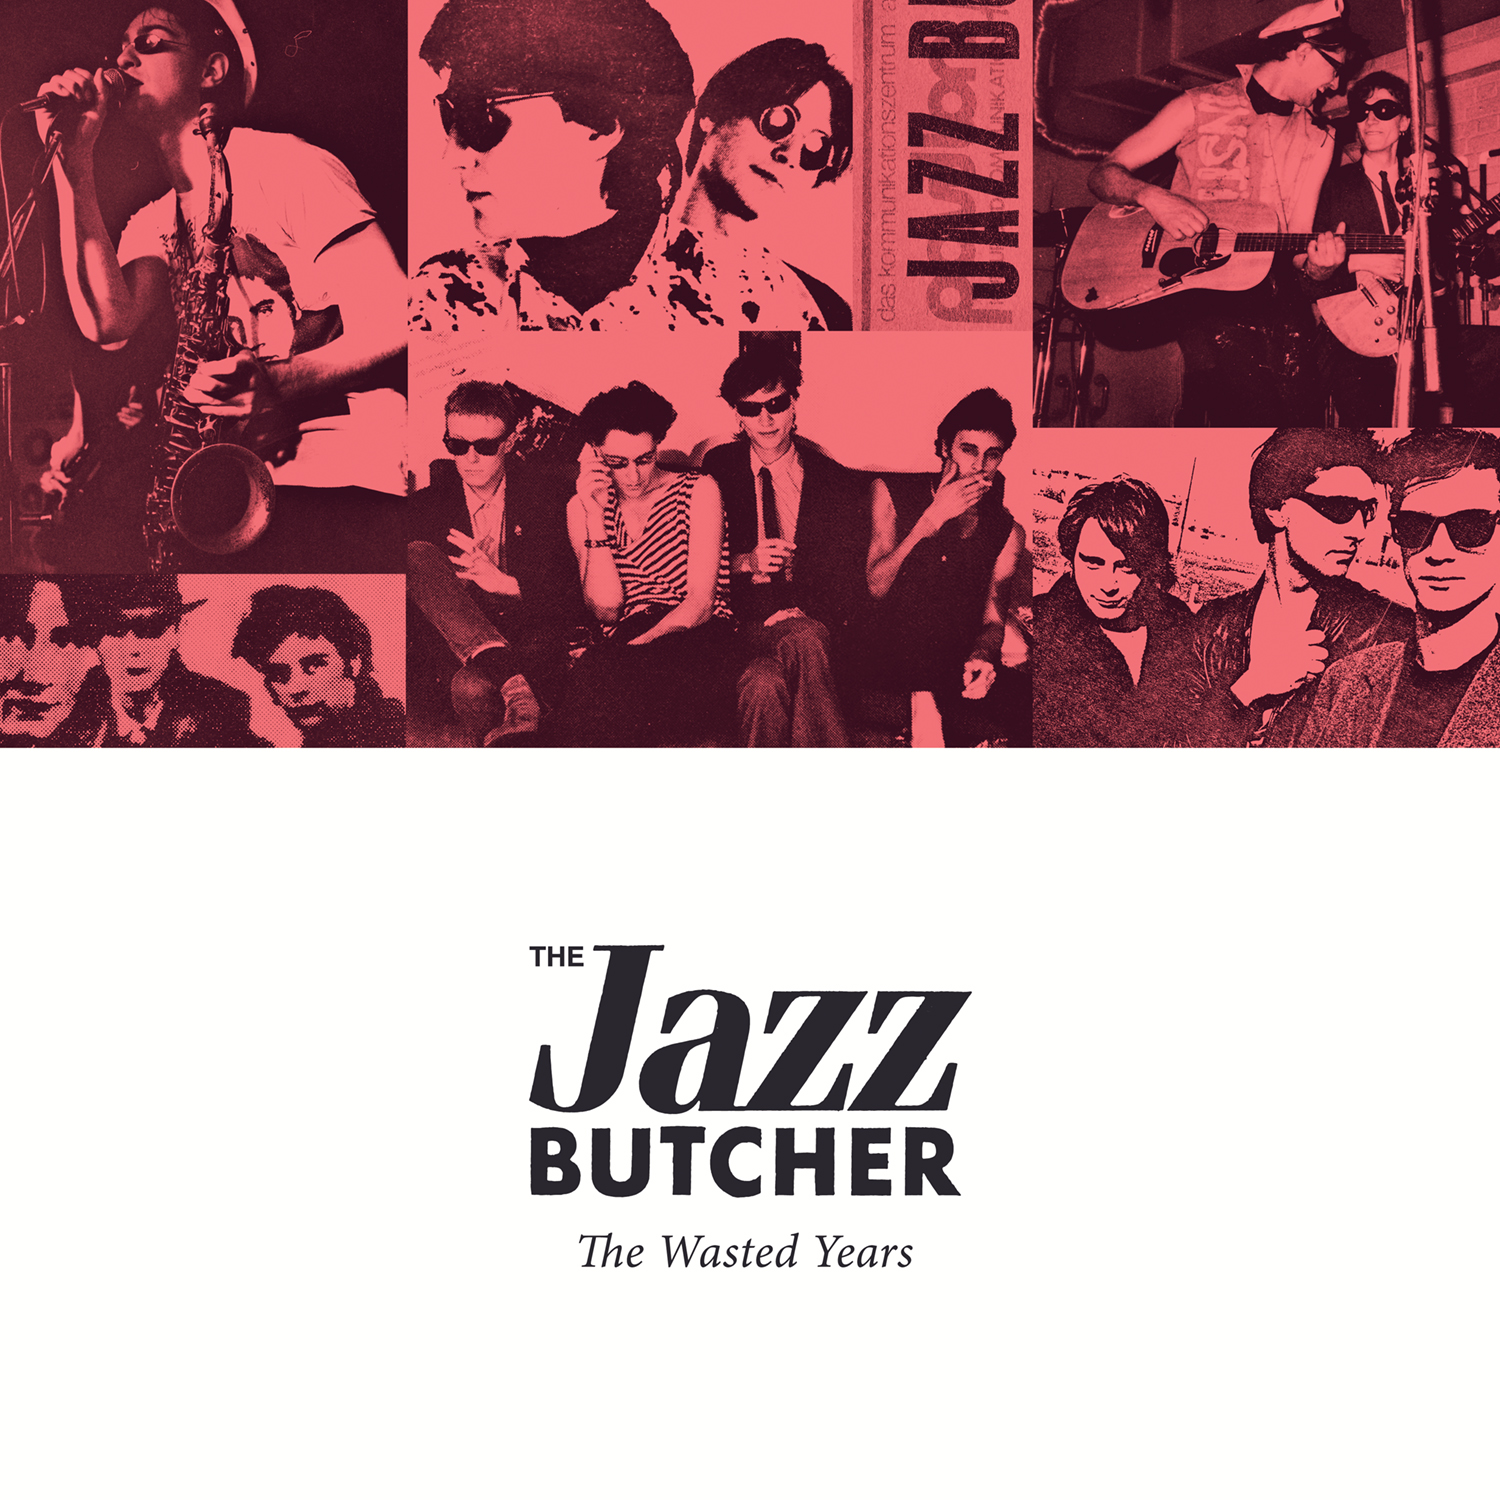 Jazz butcher